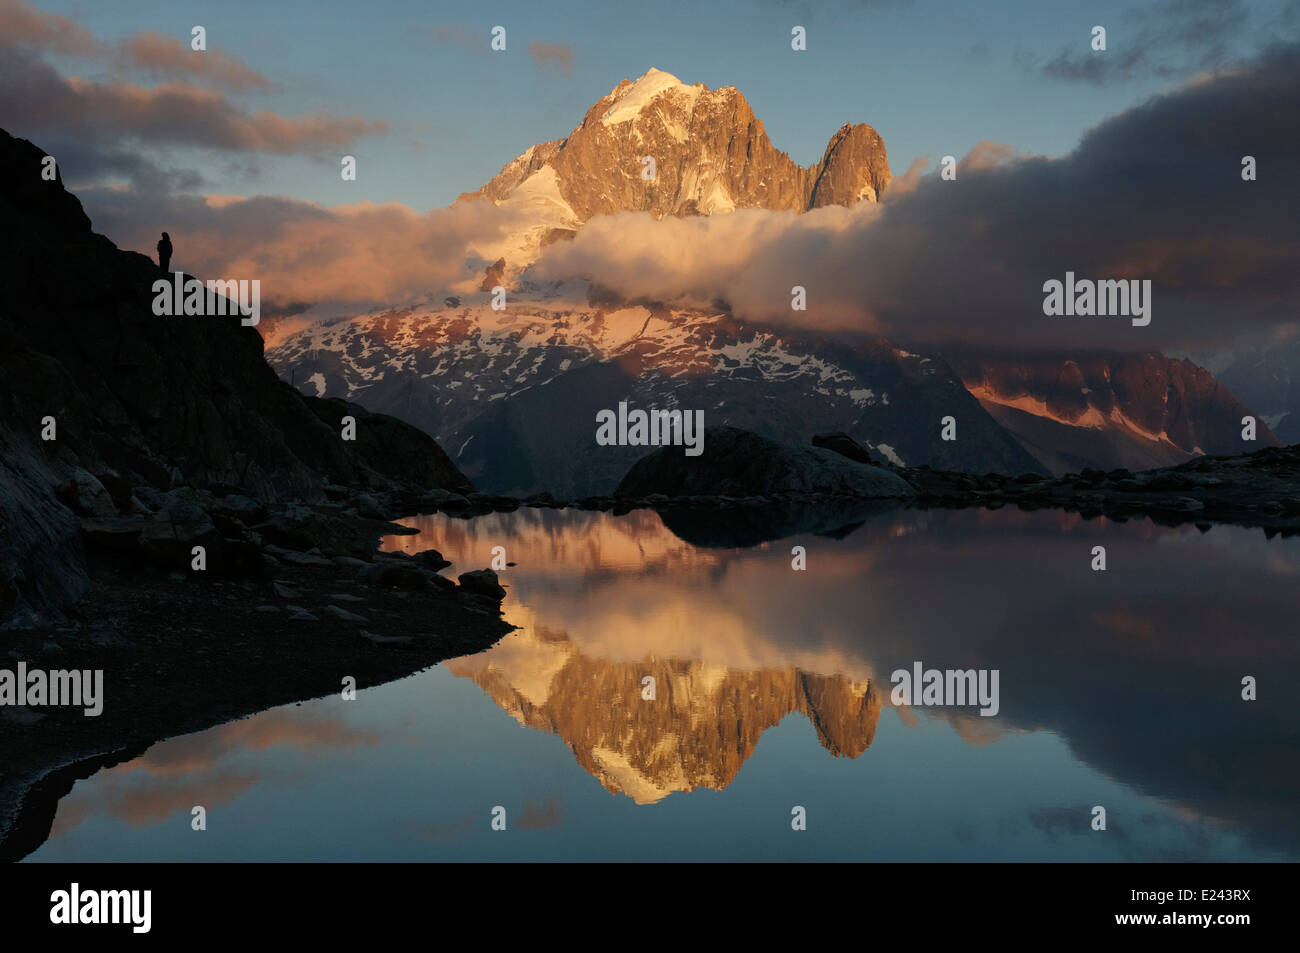 A lone person watcing sunset on the Aiguille Verte reflected in Lac Blanc, Chamonix, France Stock Photo